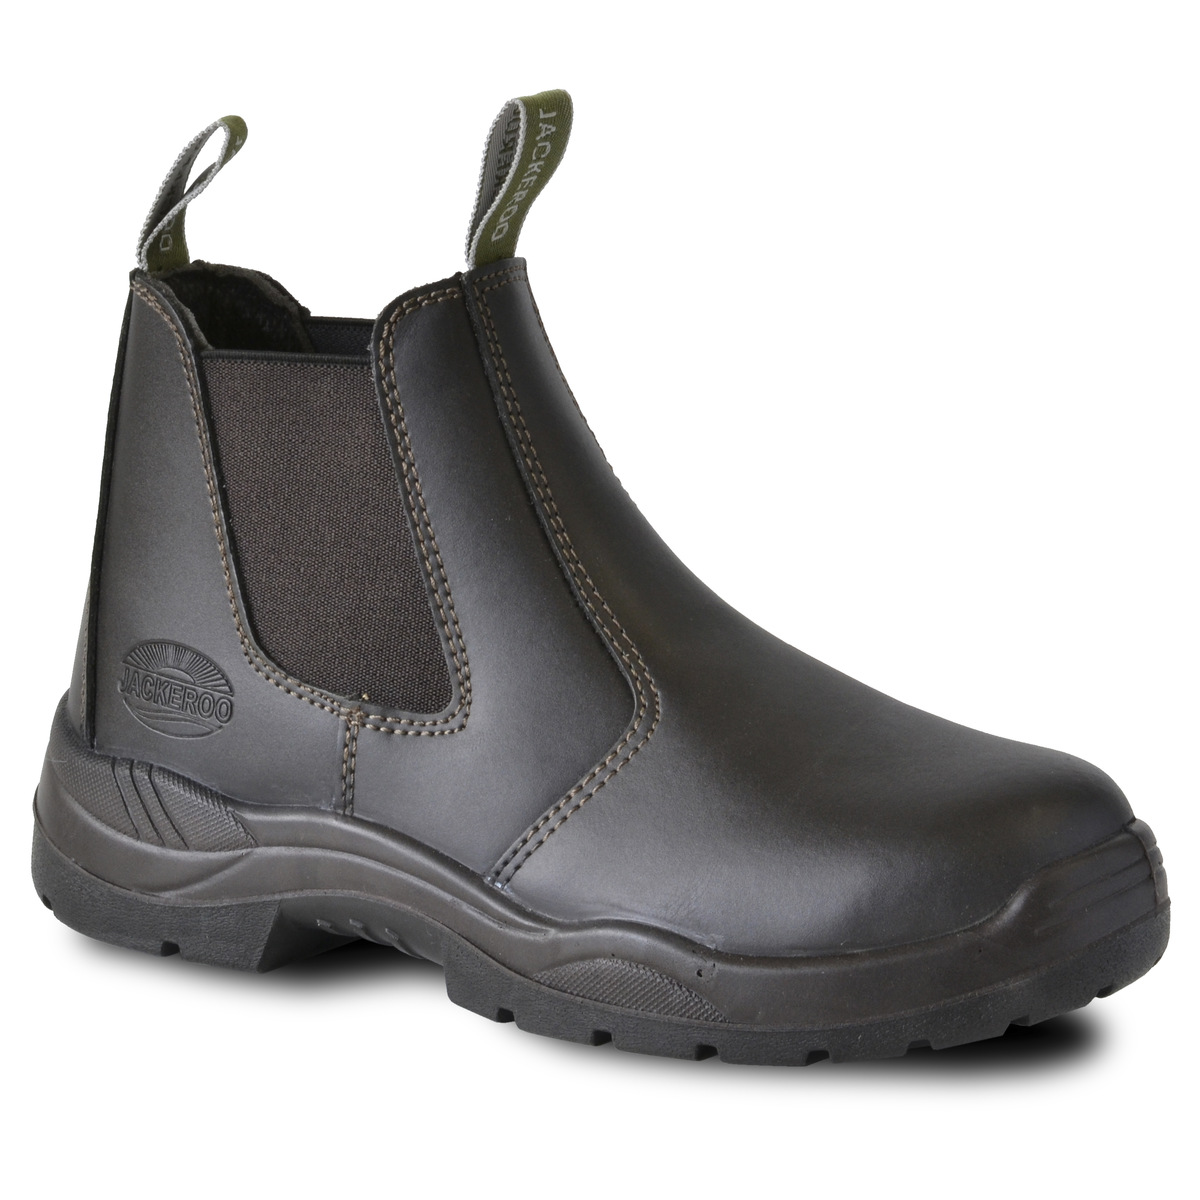 Find great deals on eBay for kmart boots. Shop with confidence.